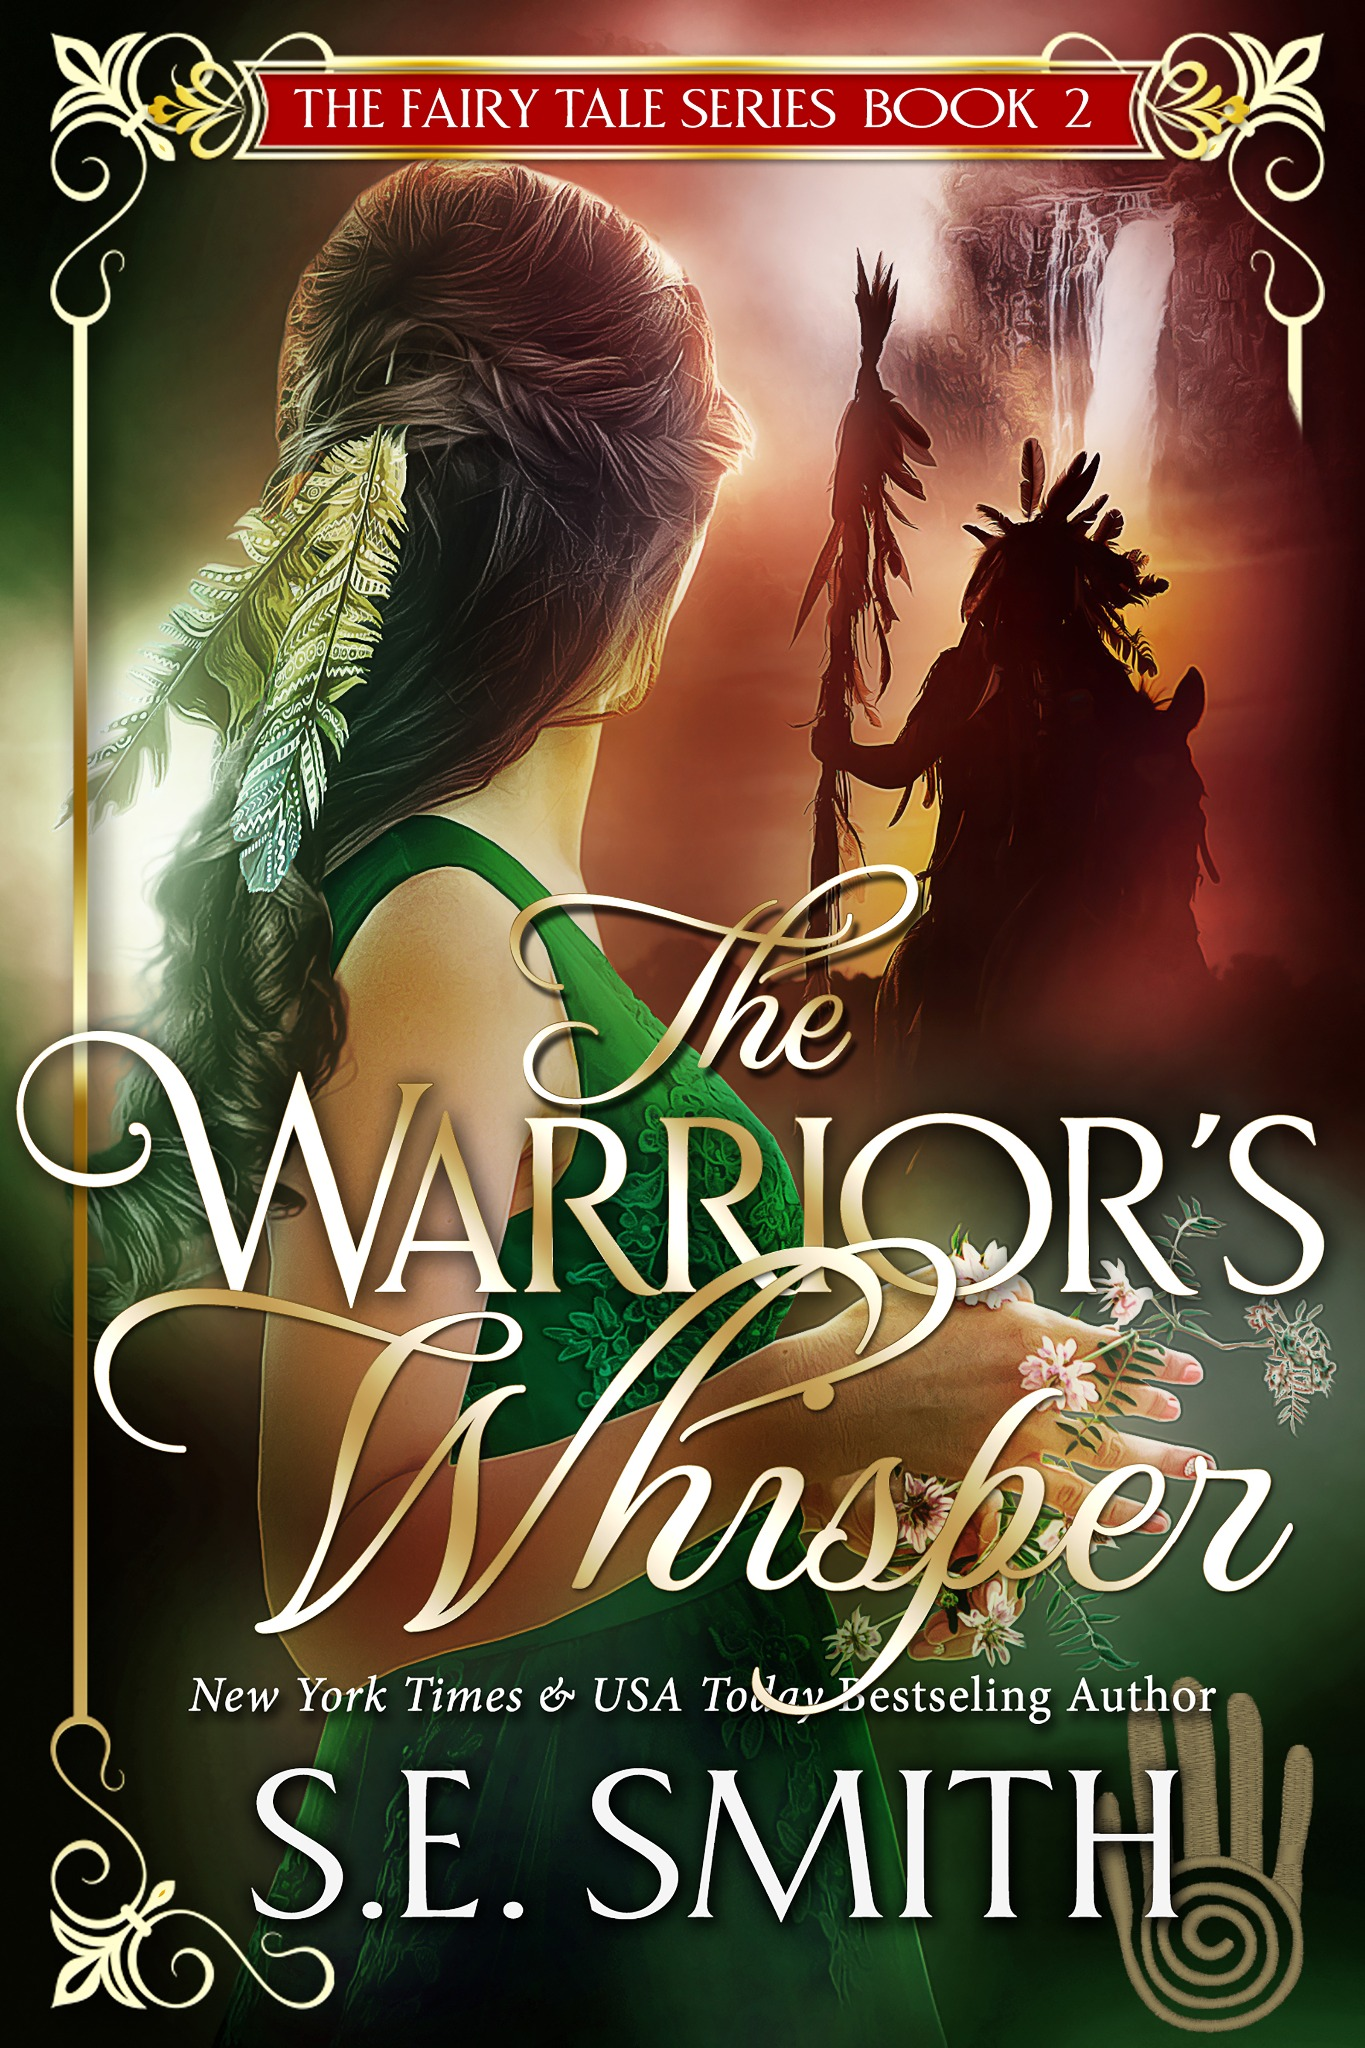 The Warrior's Whisper: Fairy Tale Series Book 2